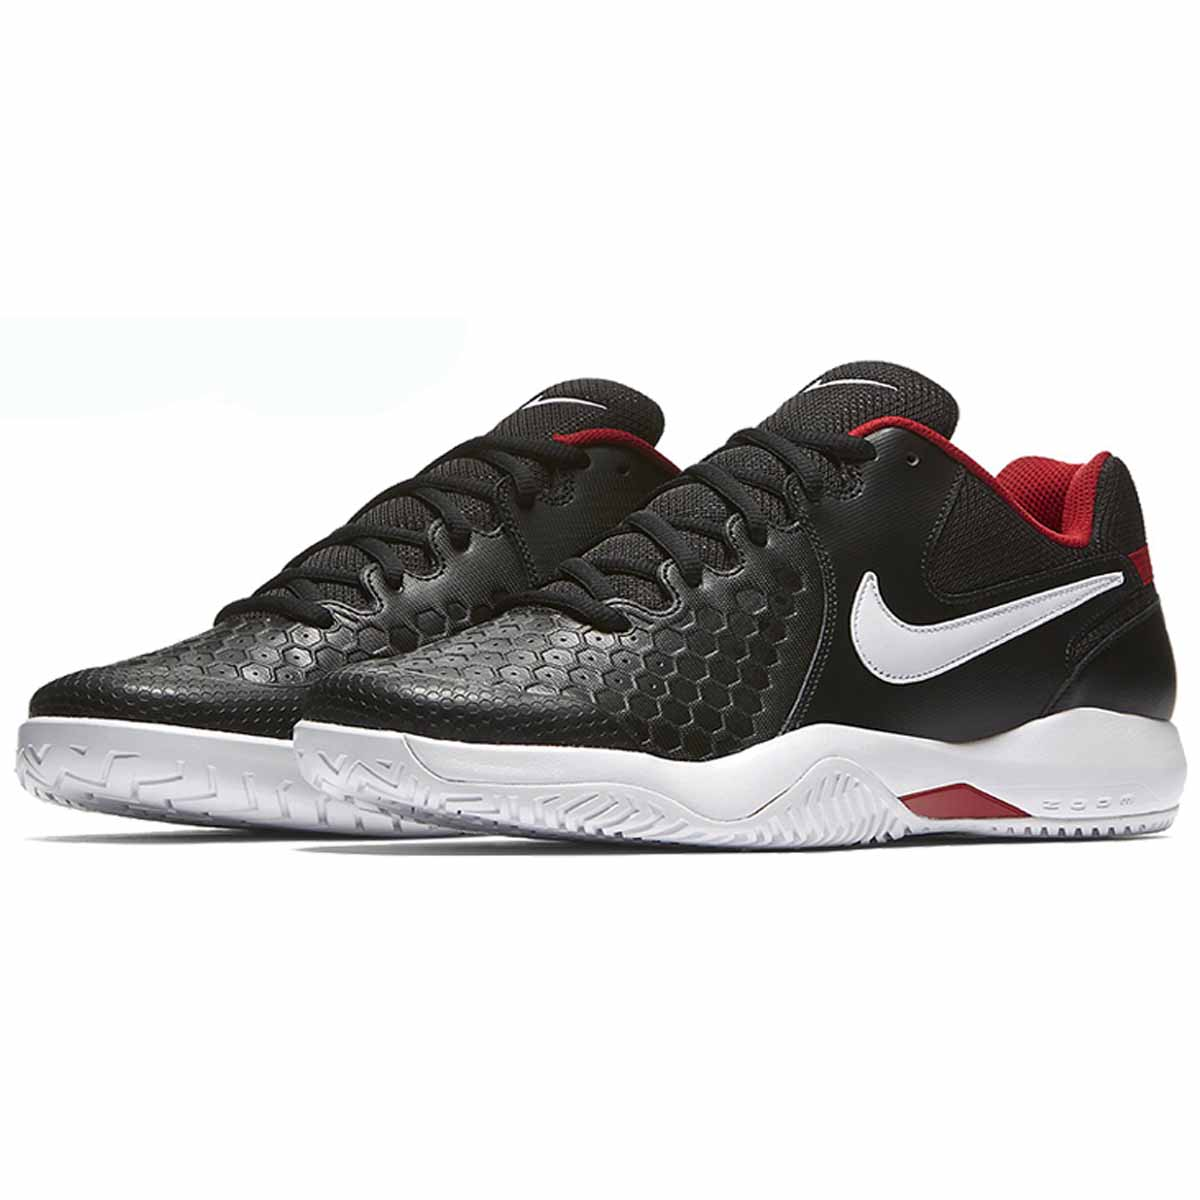 415491039afb Buy Nike Air Zoom Resistance Tennis Shoes(Black White Red) Online